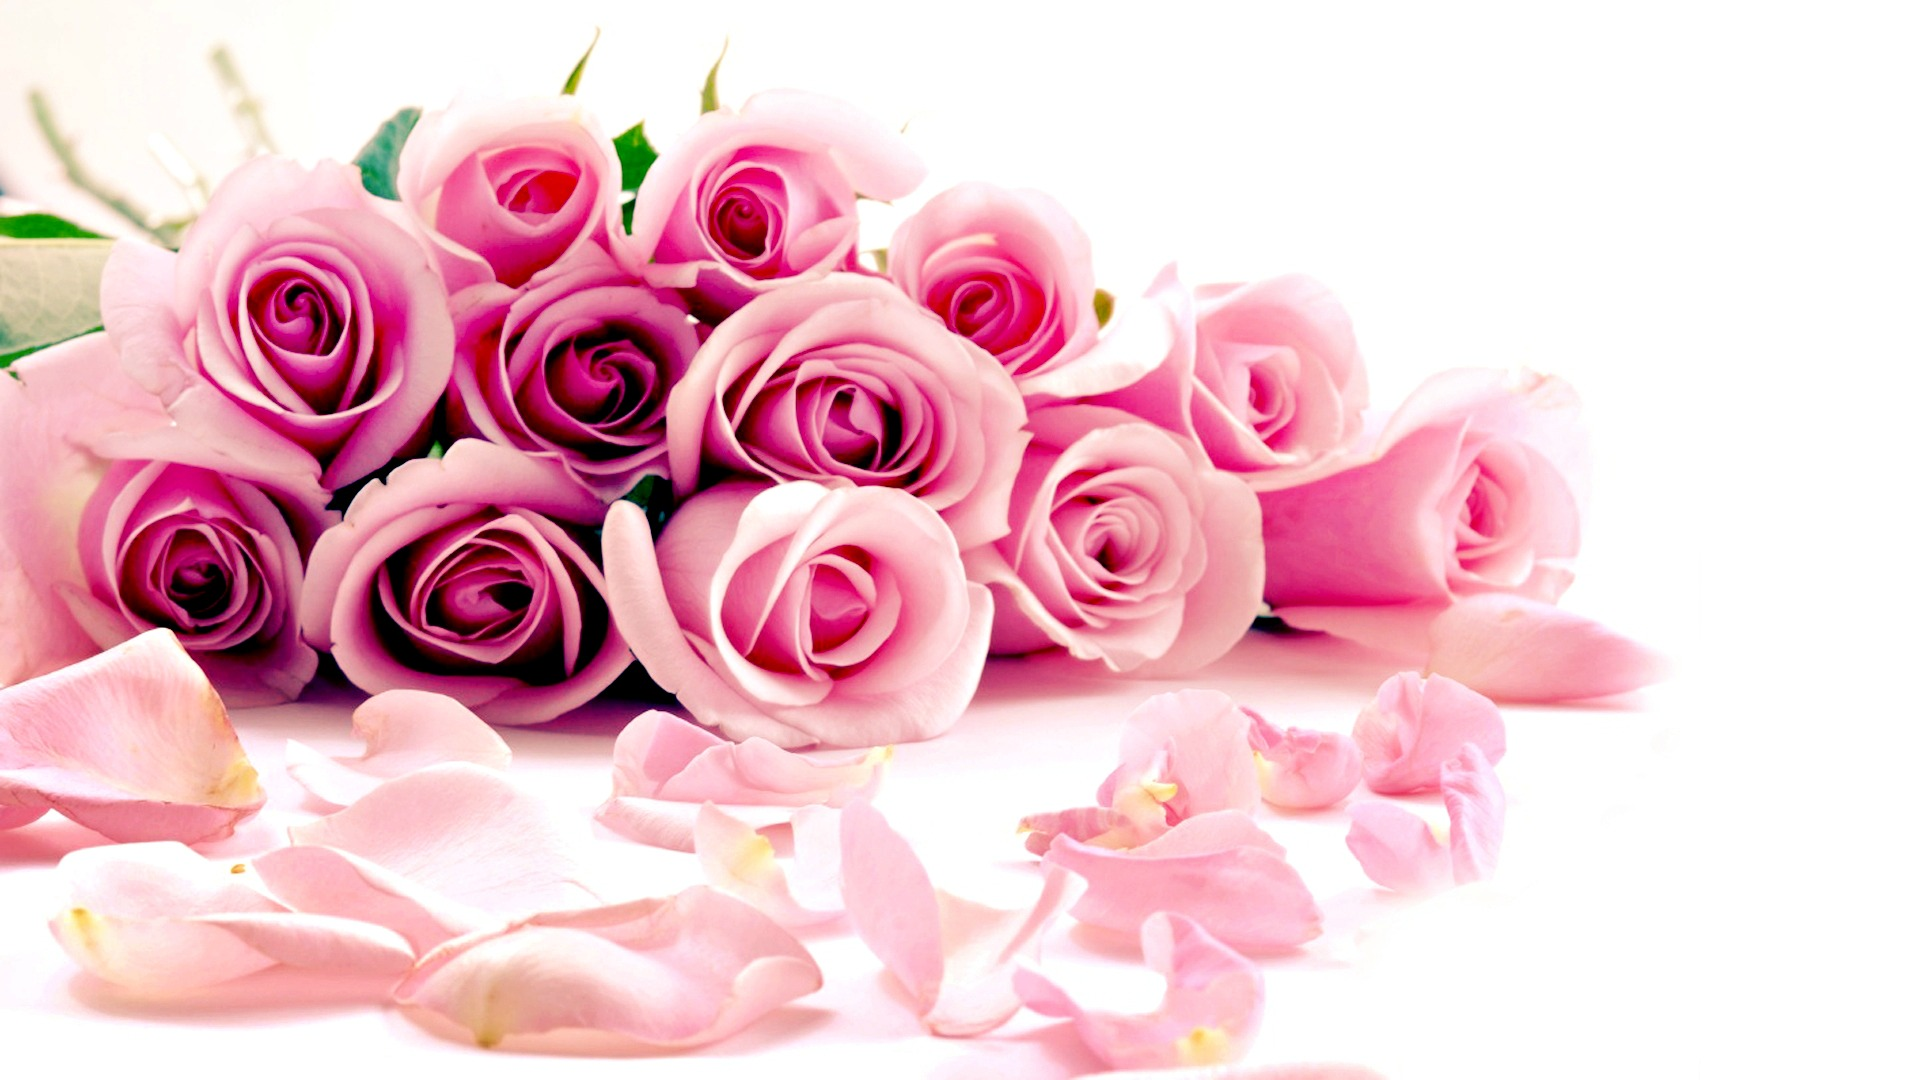 70 beautiful rose flowers wallpapers Pictures